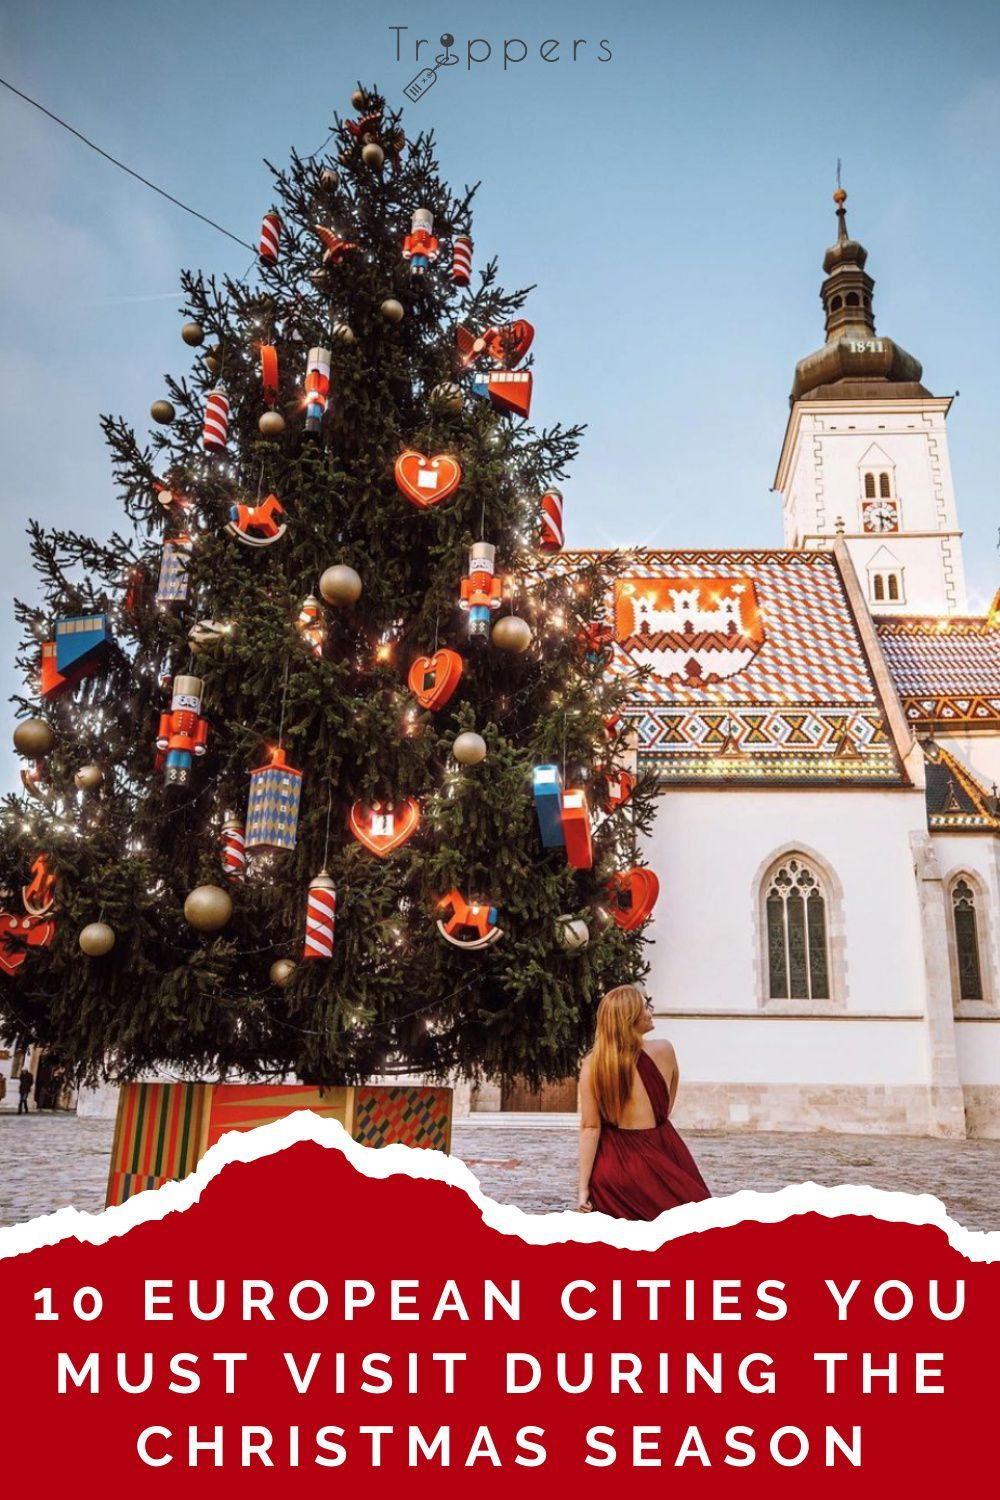 10 European Cities You Must Visit During The Christmas Season